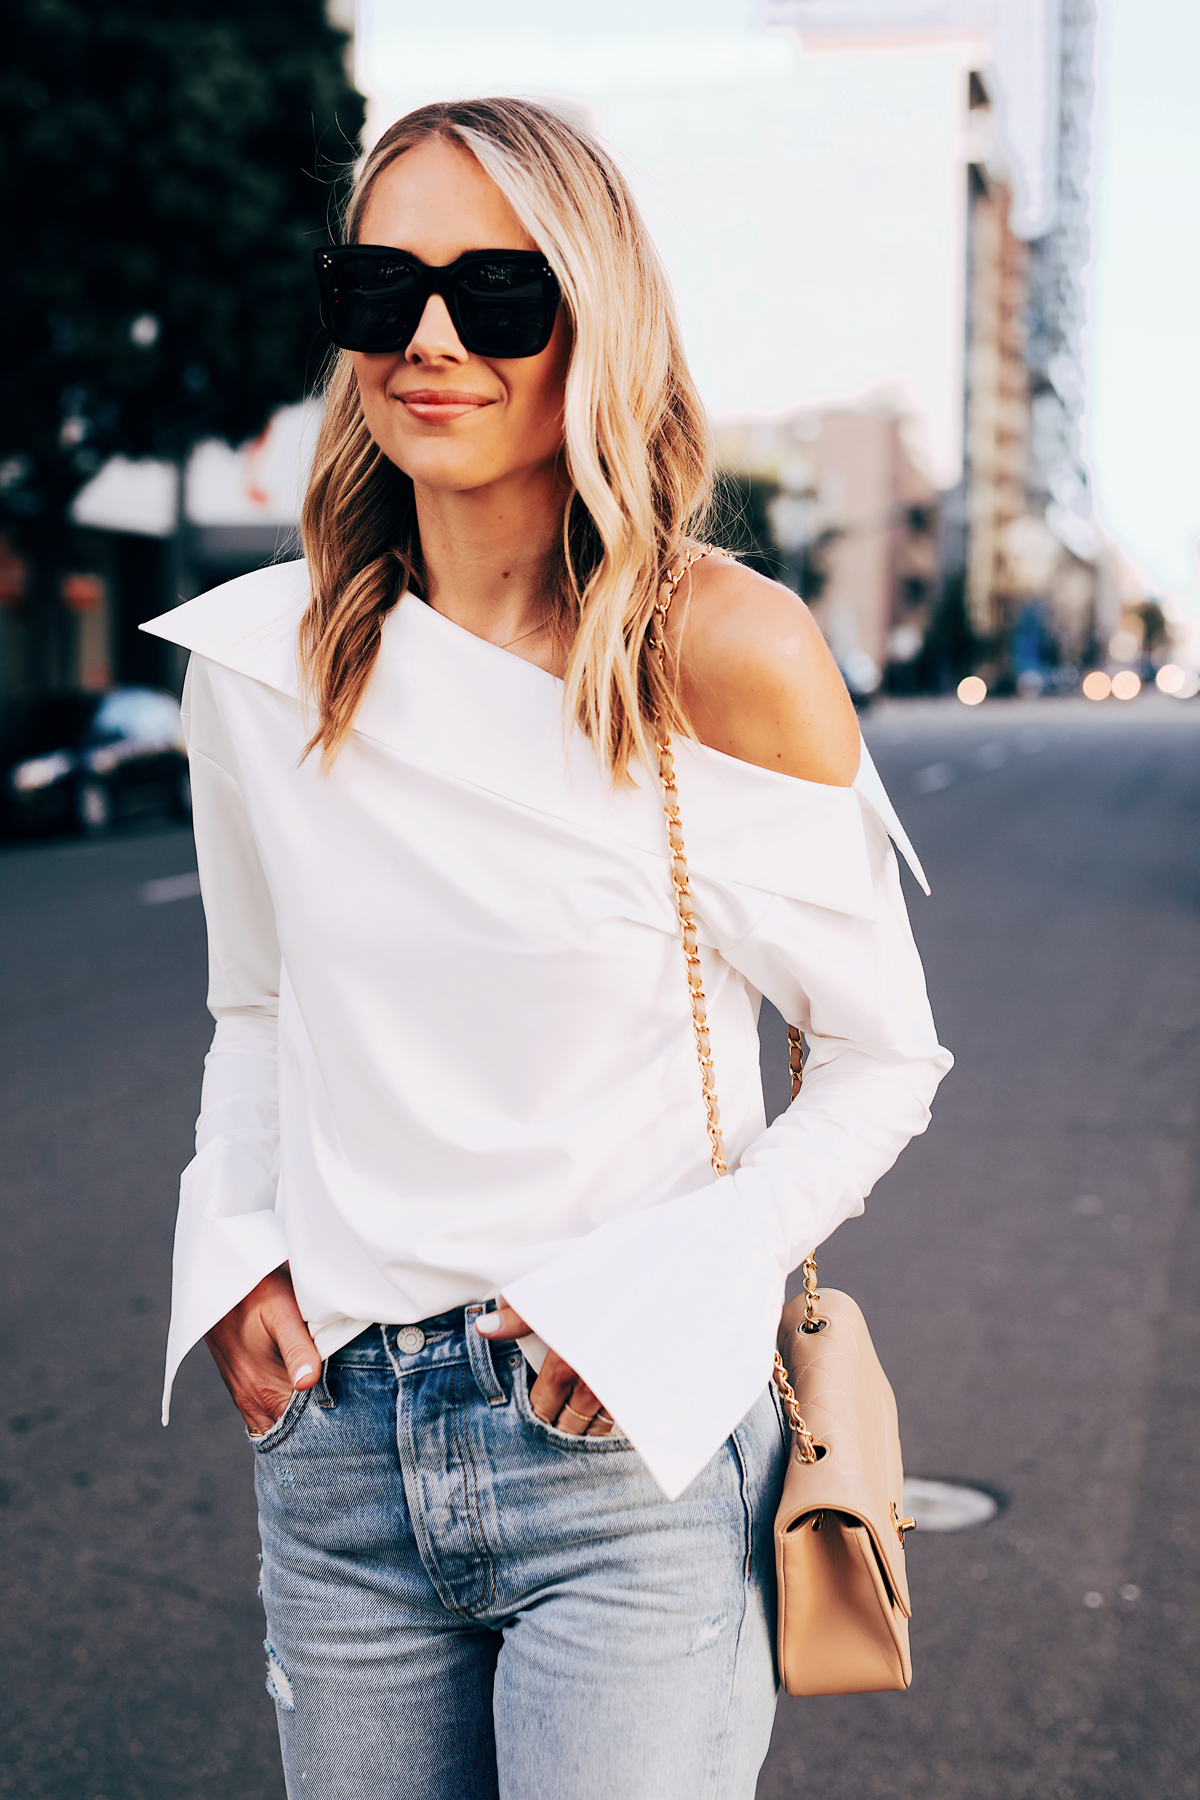 Blonde Woman Wearing White Off the Shoulder Top Ripped Jeans Fashion Jackson San Diego Fashion Blogger Street Style